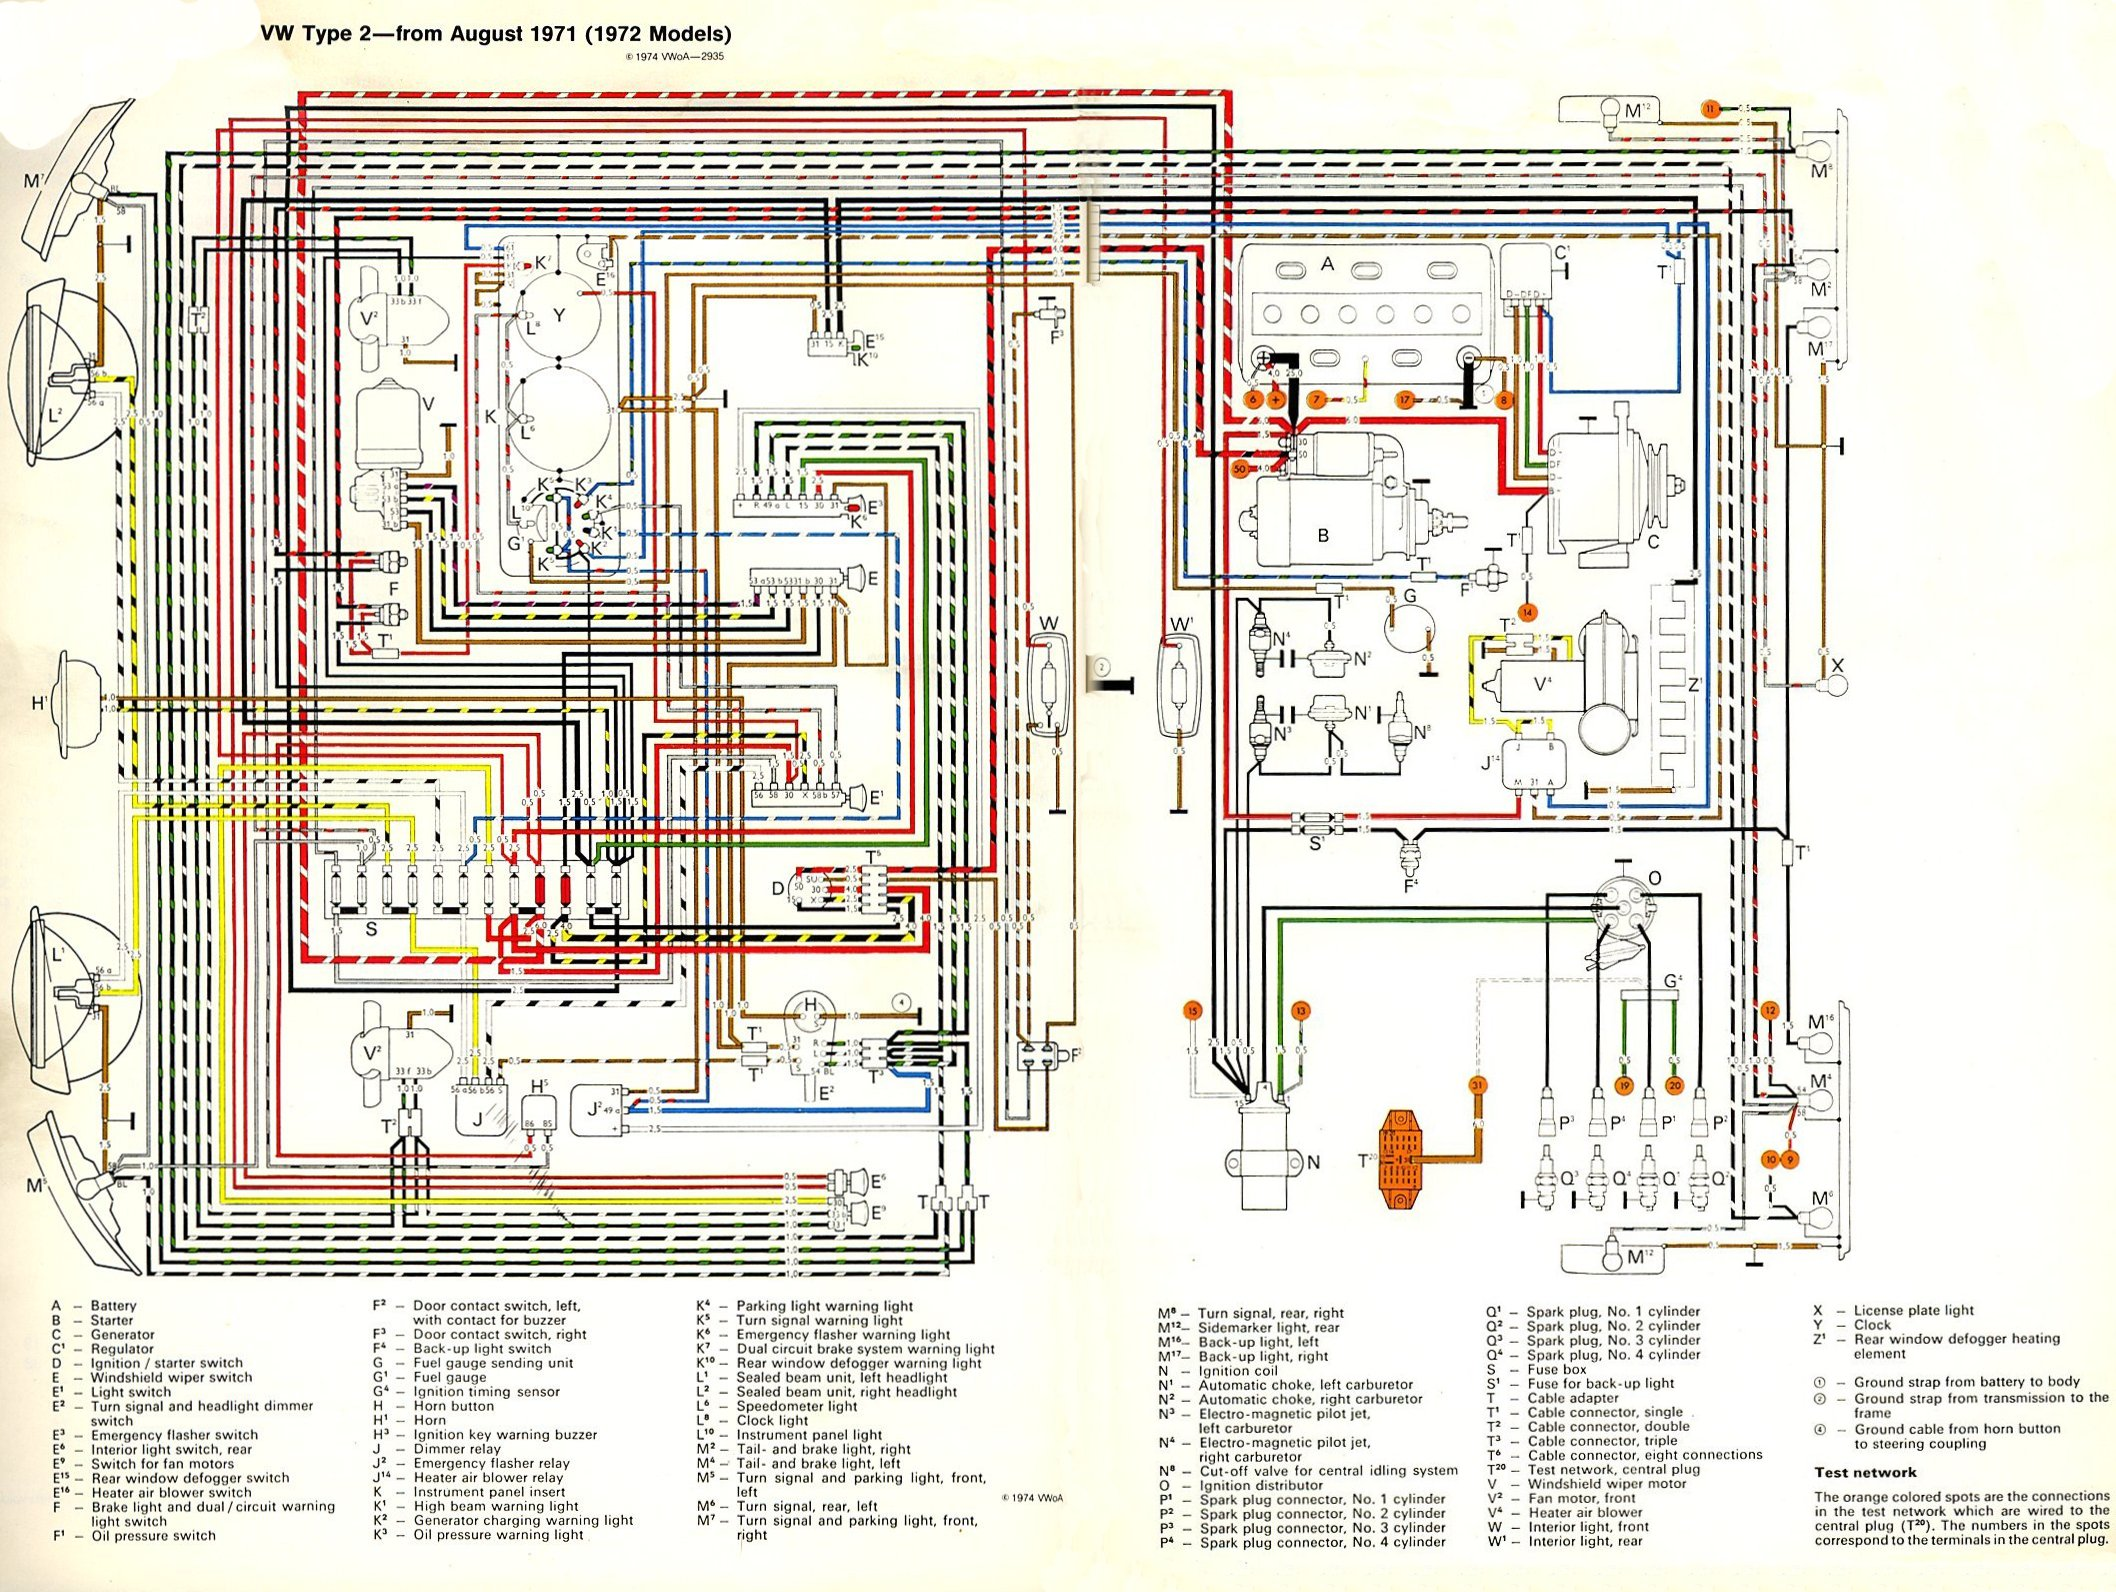 bus_1972_wiring 1977 porsche 911 wiring diagram wiring diagram simonand 1978 vw bus fuse box diagram at arjmand.co